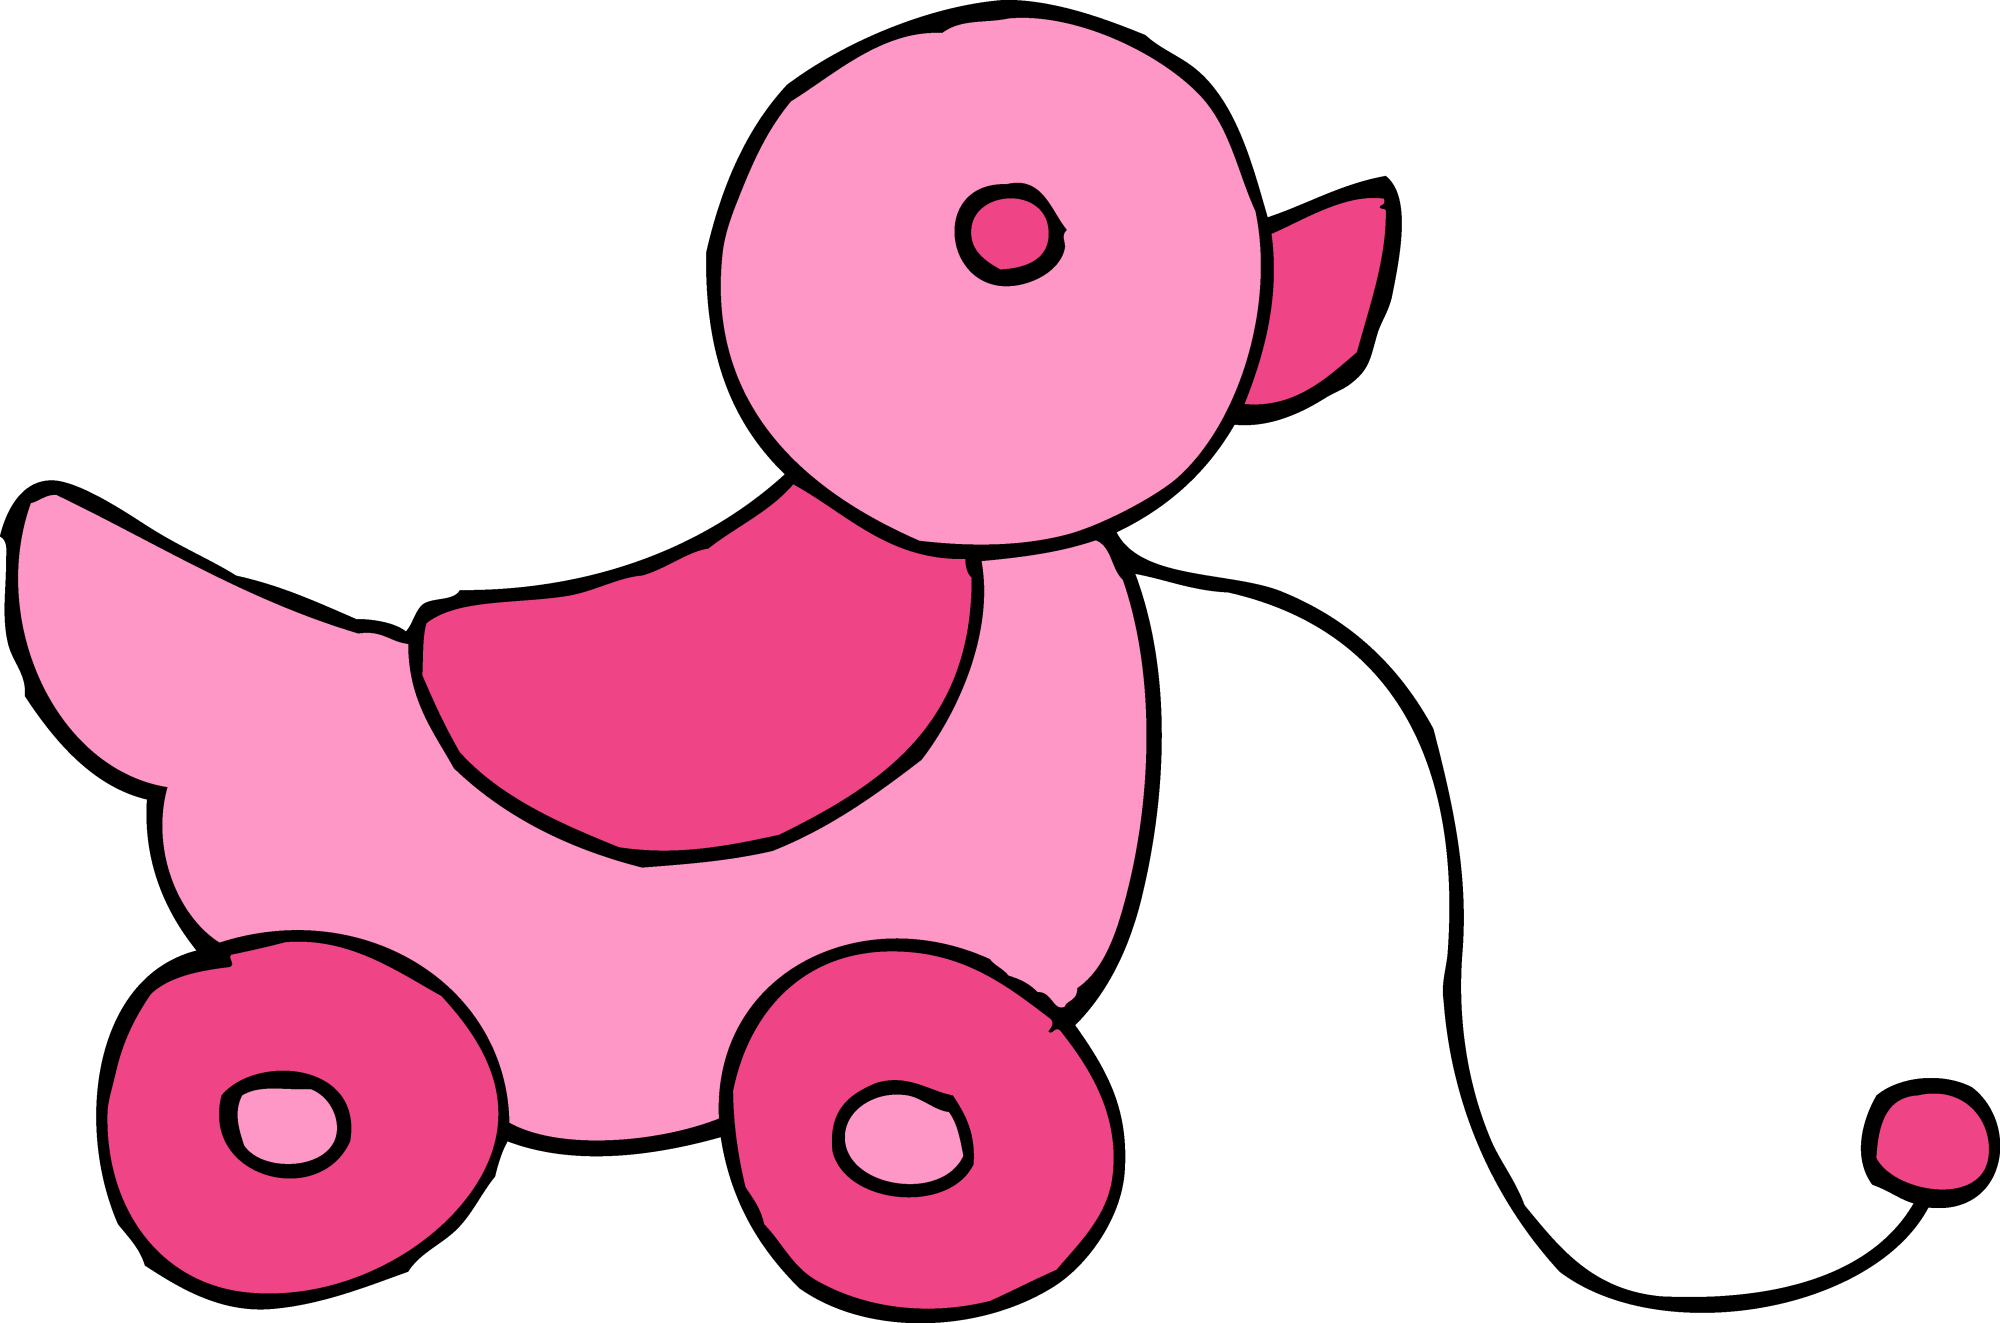 hight resolution of 6279x4154 pink clipart baby toy